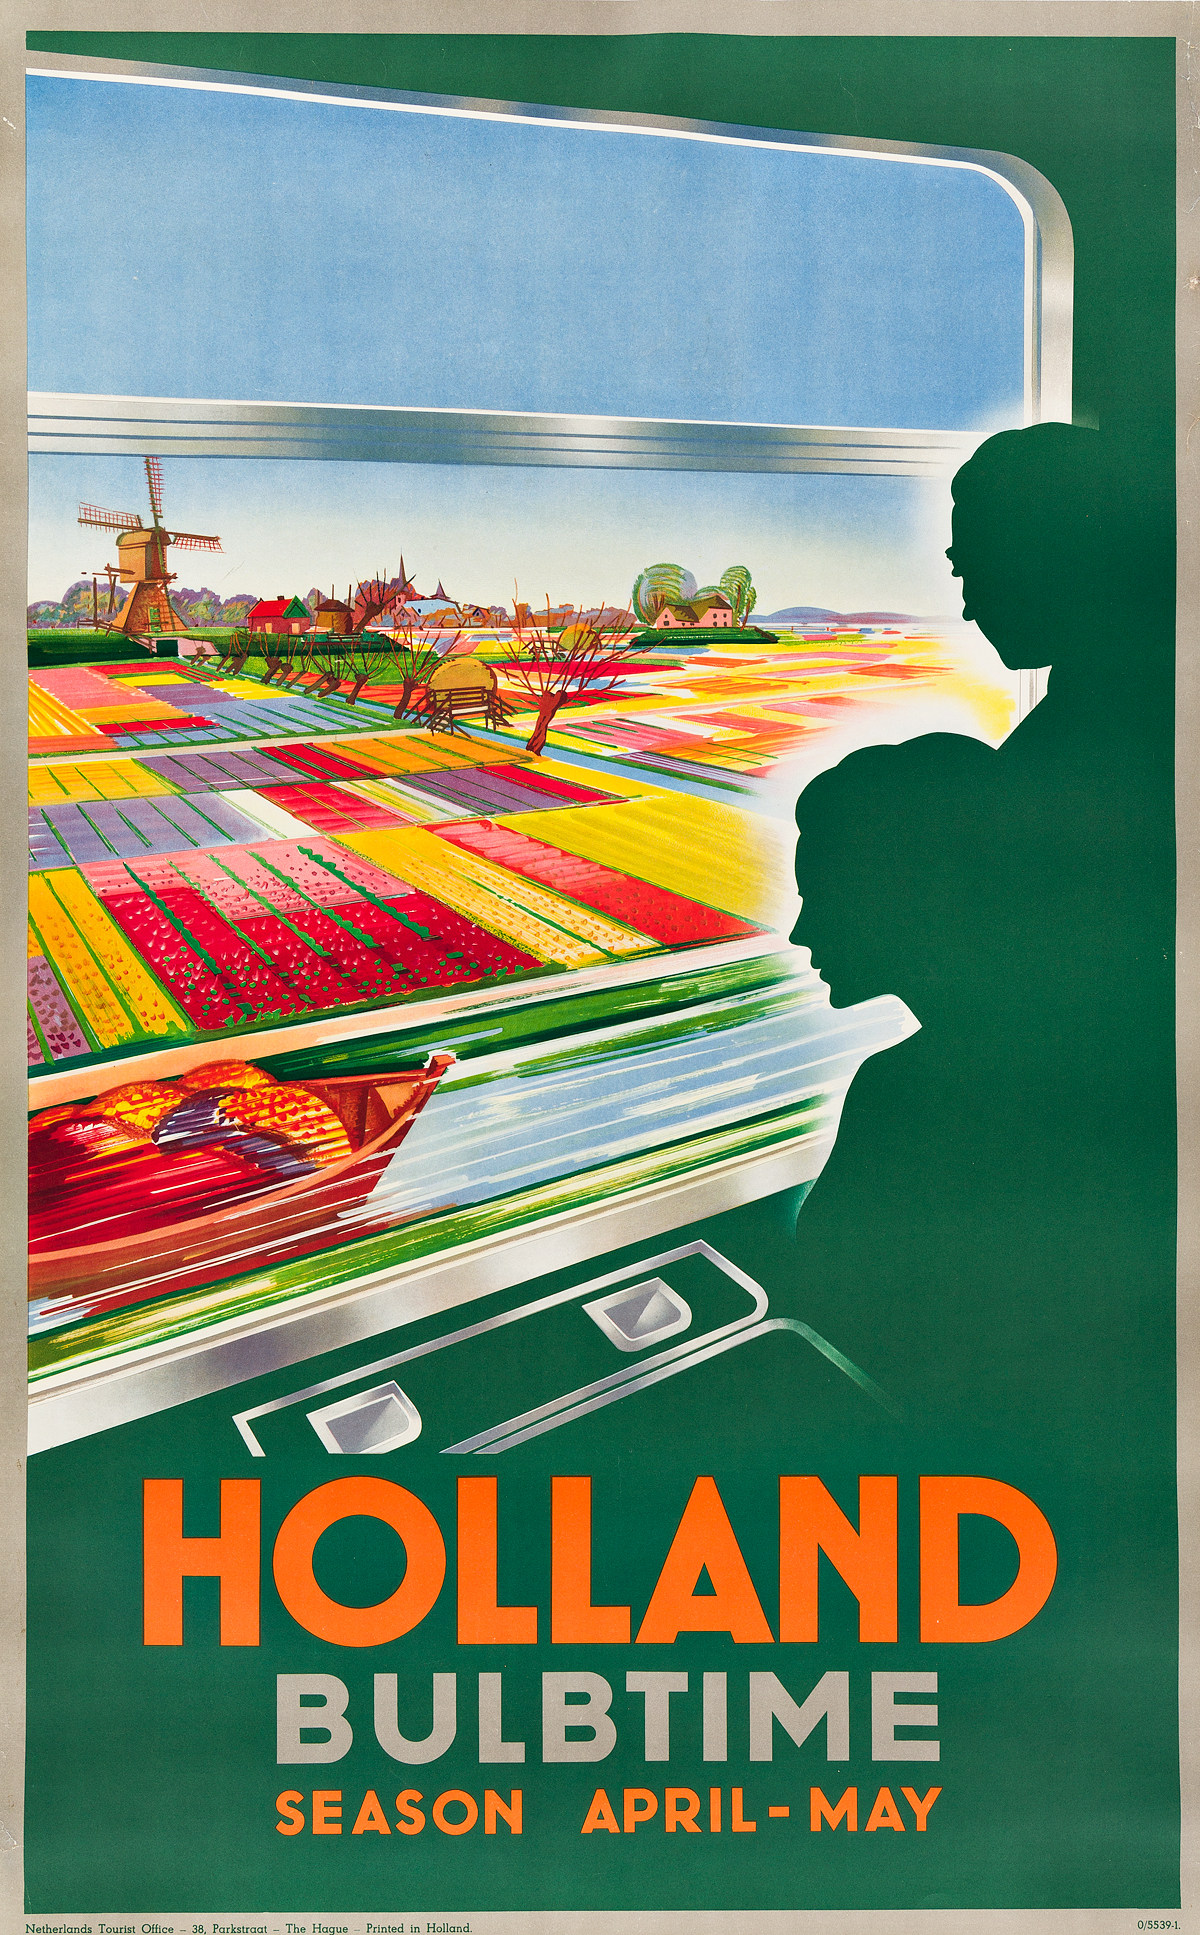 VARIOUS-ARTISTS-HOLLAND-Two-posters-Sizes-vary-approximately-40x24-inches-101x62-cm